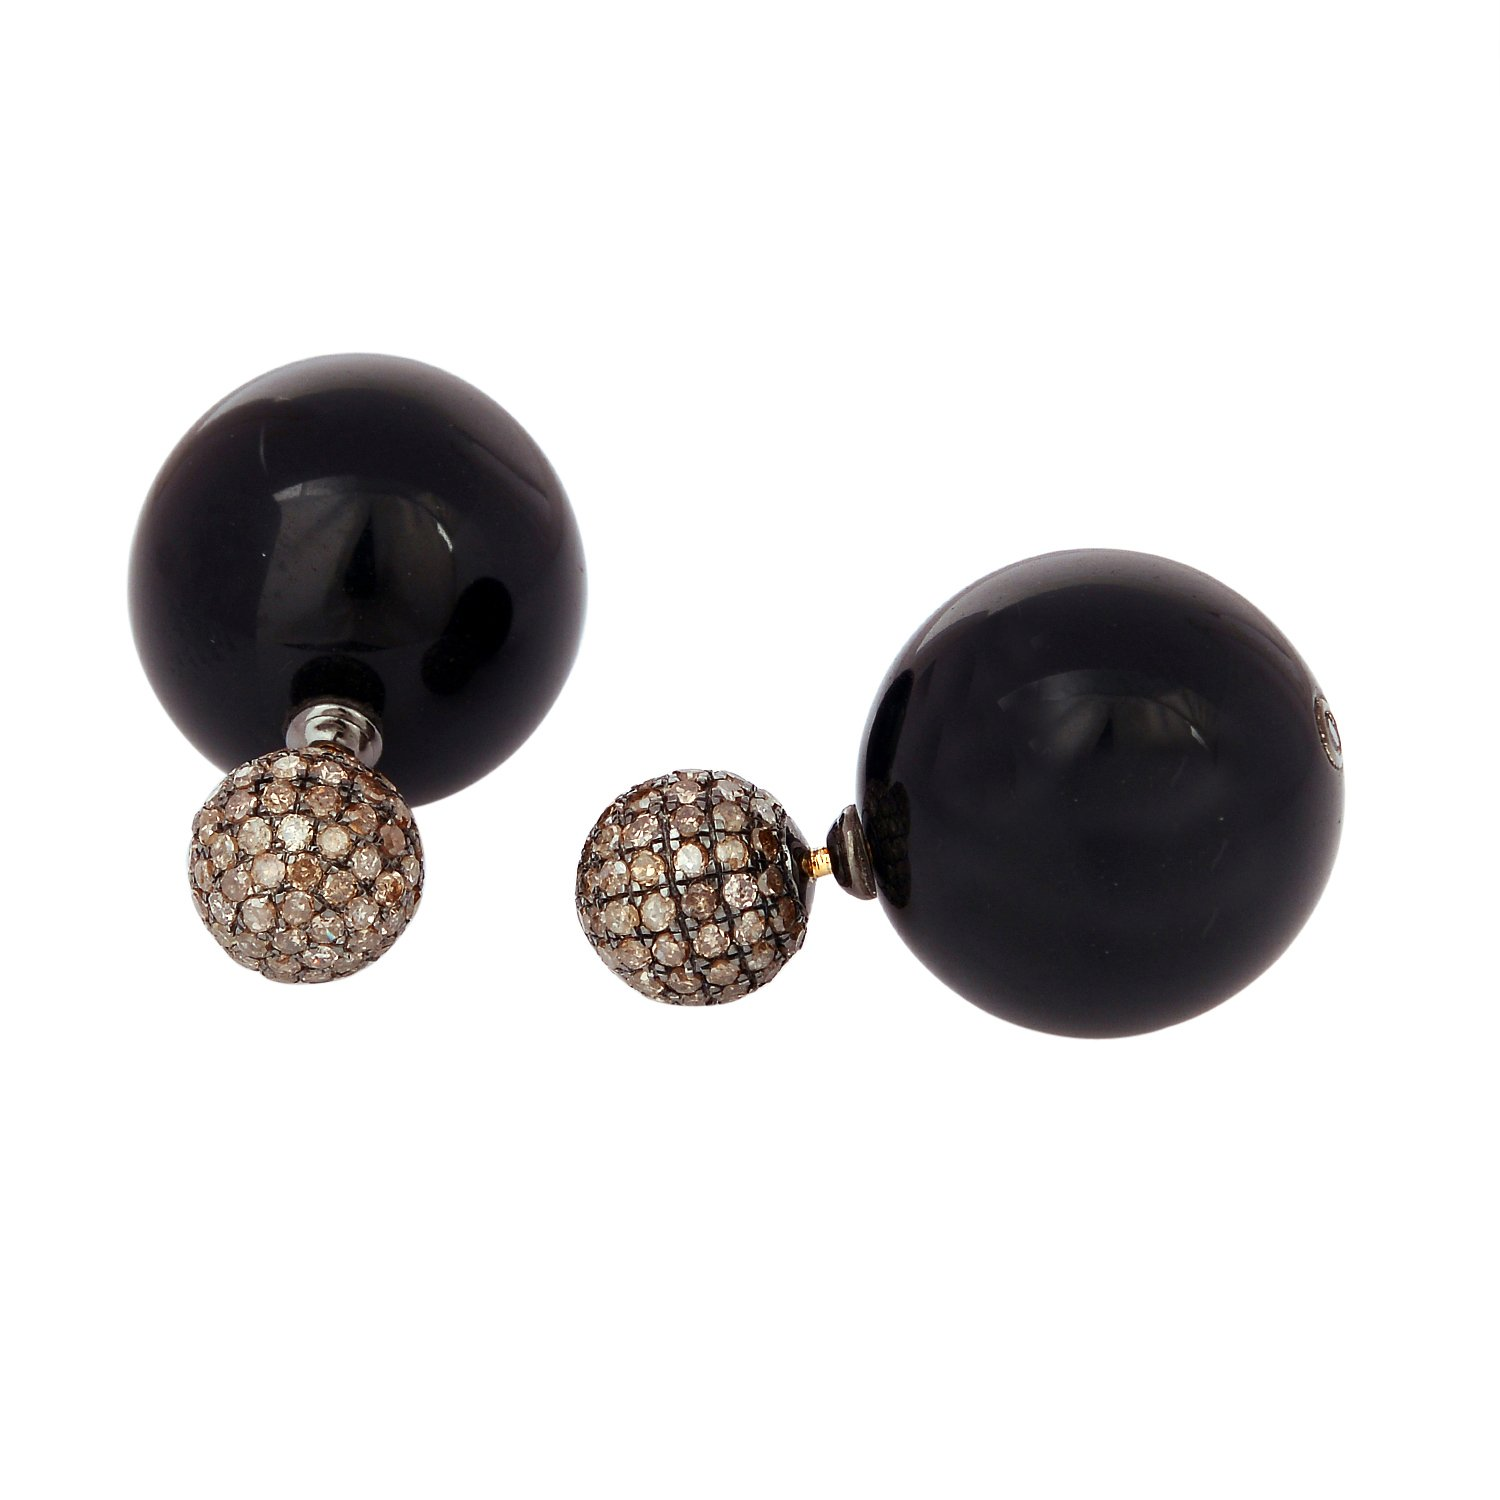 Black Onyx Pave Diamond Double Ball Earrings Tunnel Jewelry 18K Gold & Sterling Silver